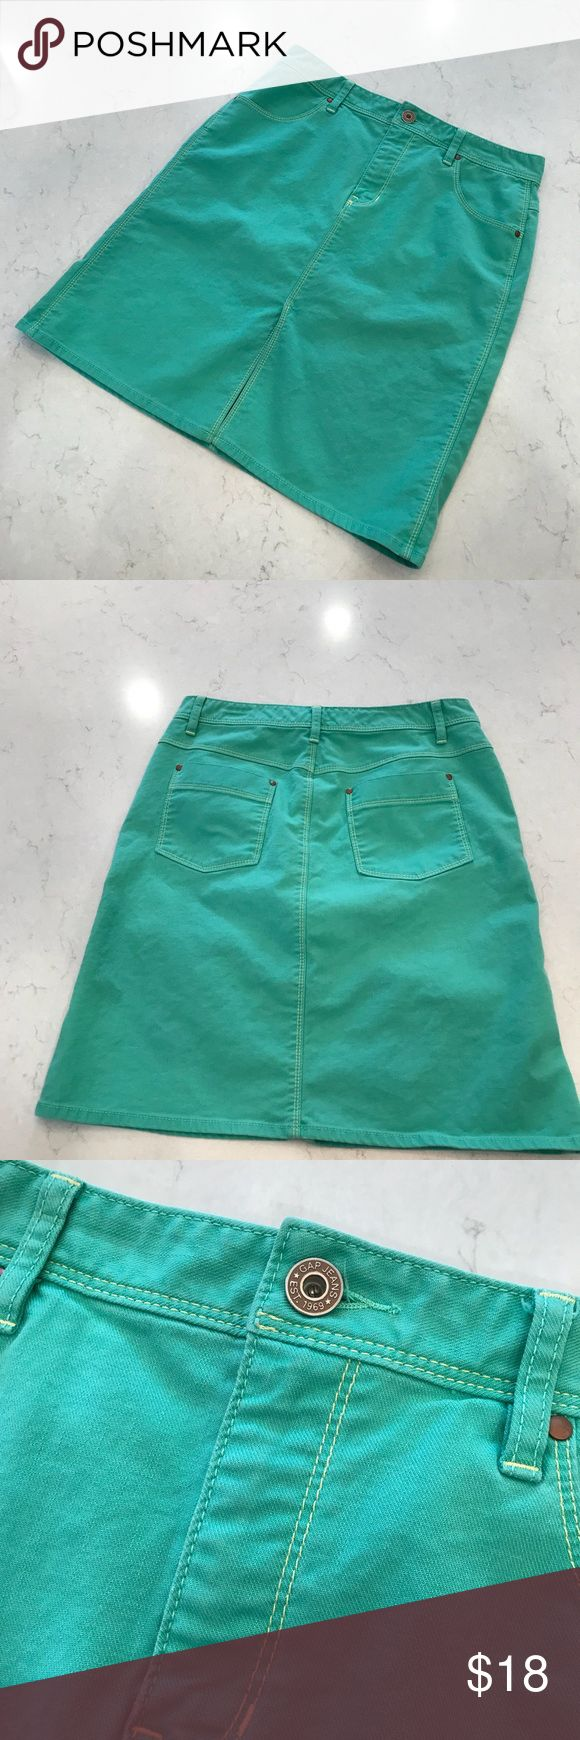 Gap Skirt Gap Skirt - Fantastic Green color!!🍀 98% cotton 2% Lycra Spandex  Great condition!  Note: last photo shows a faint mark on the fabric but it's no biggie, and otherwise flawless. Please excuse the improper mannequin (too small) fit. GAP Skirts